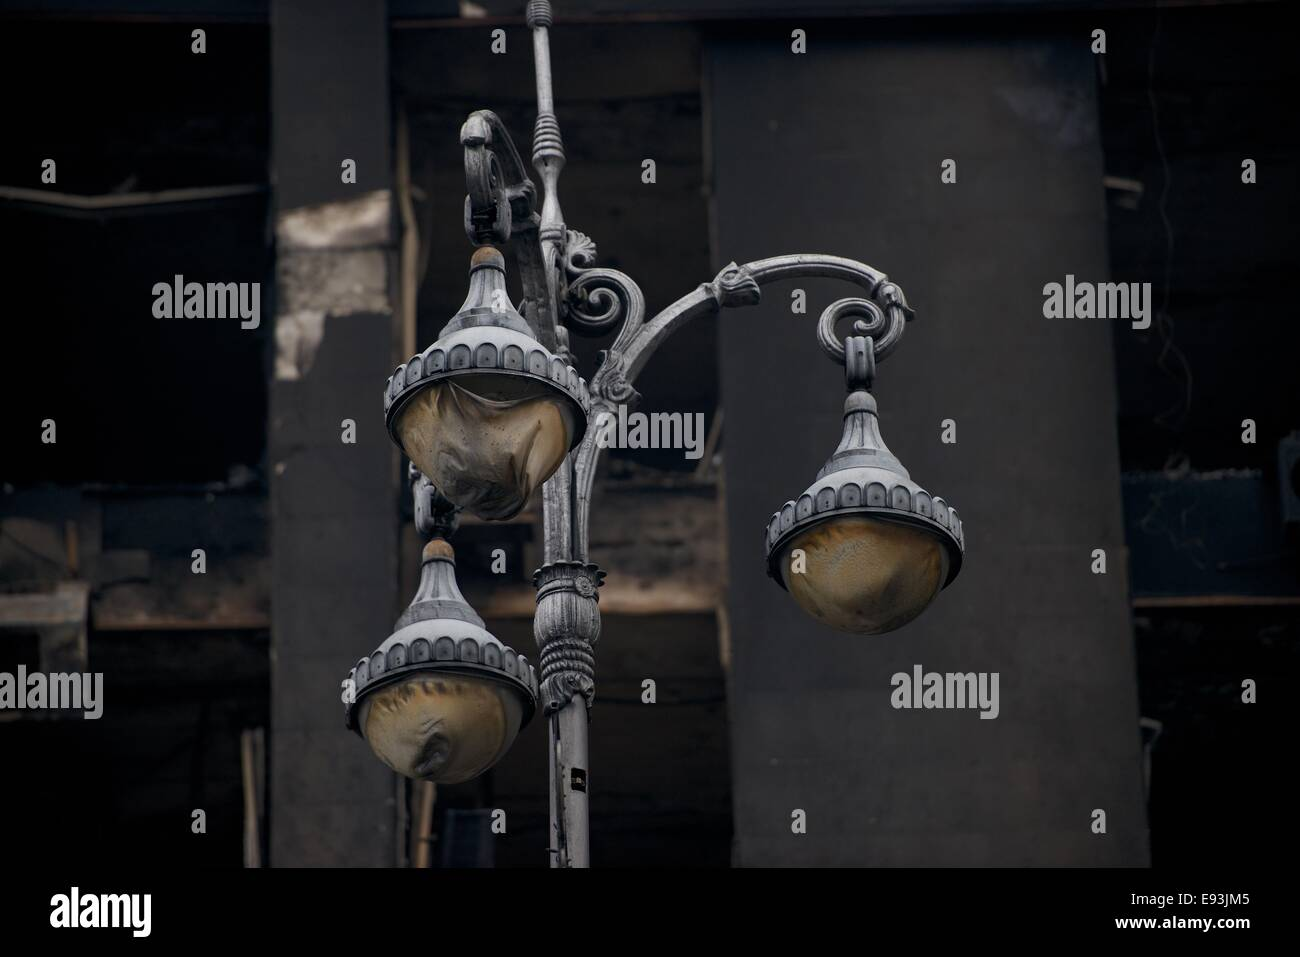 Charred and melted street lamps in front of a burned out building, Indepndence square Kiev - Stock Image